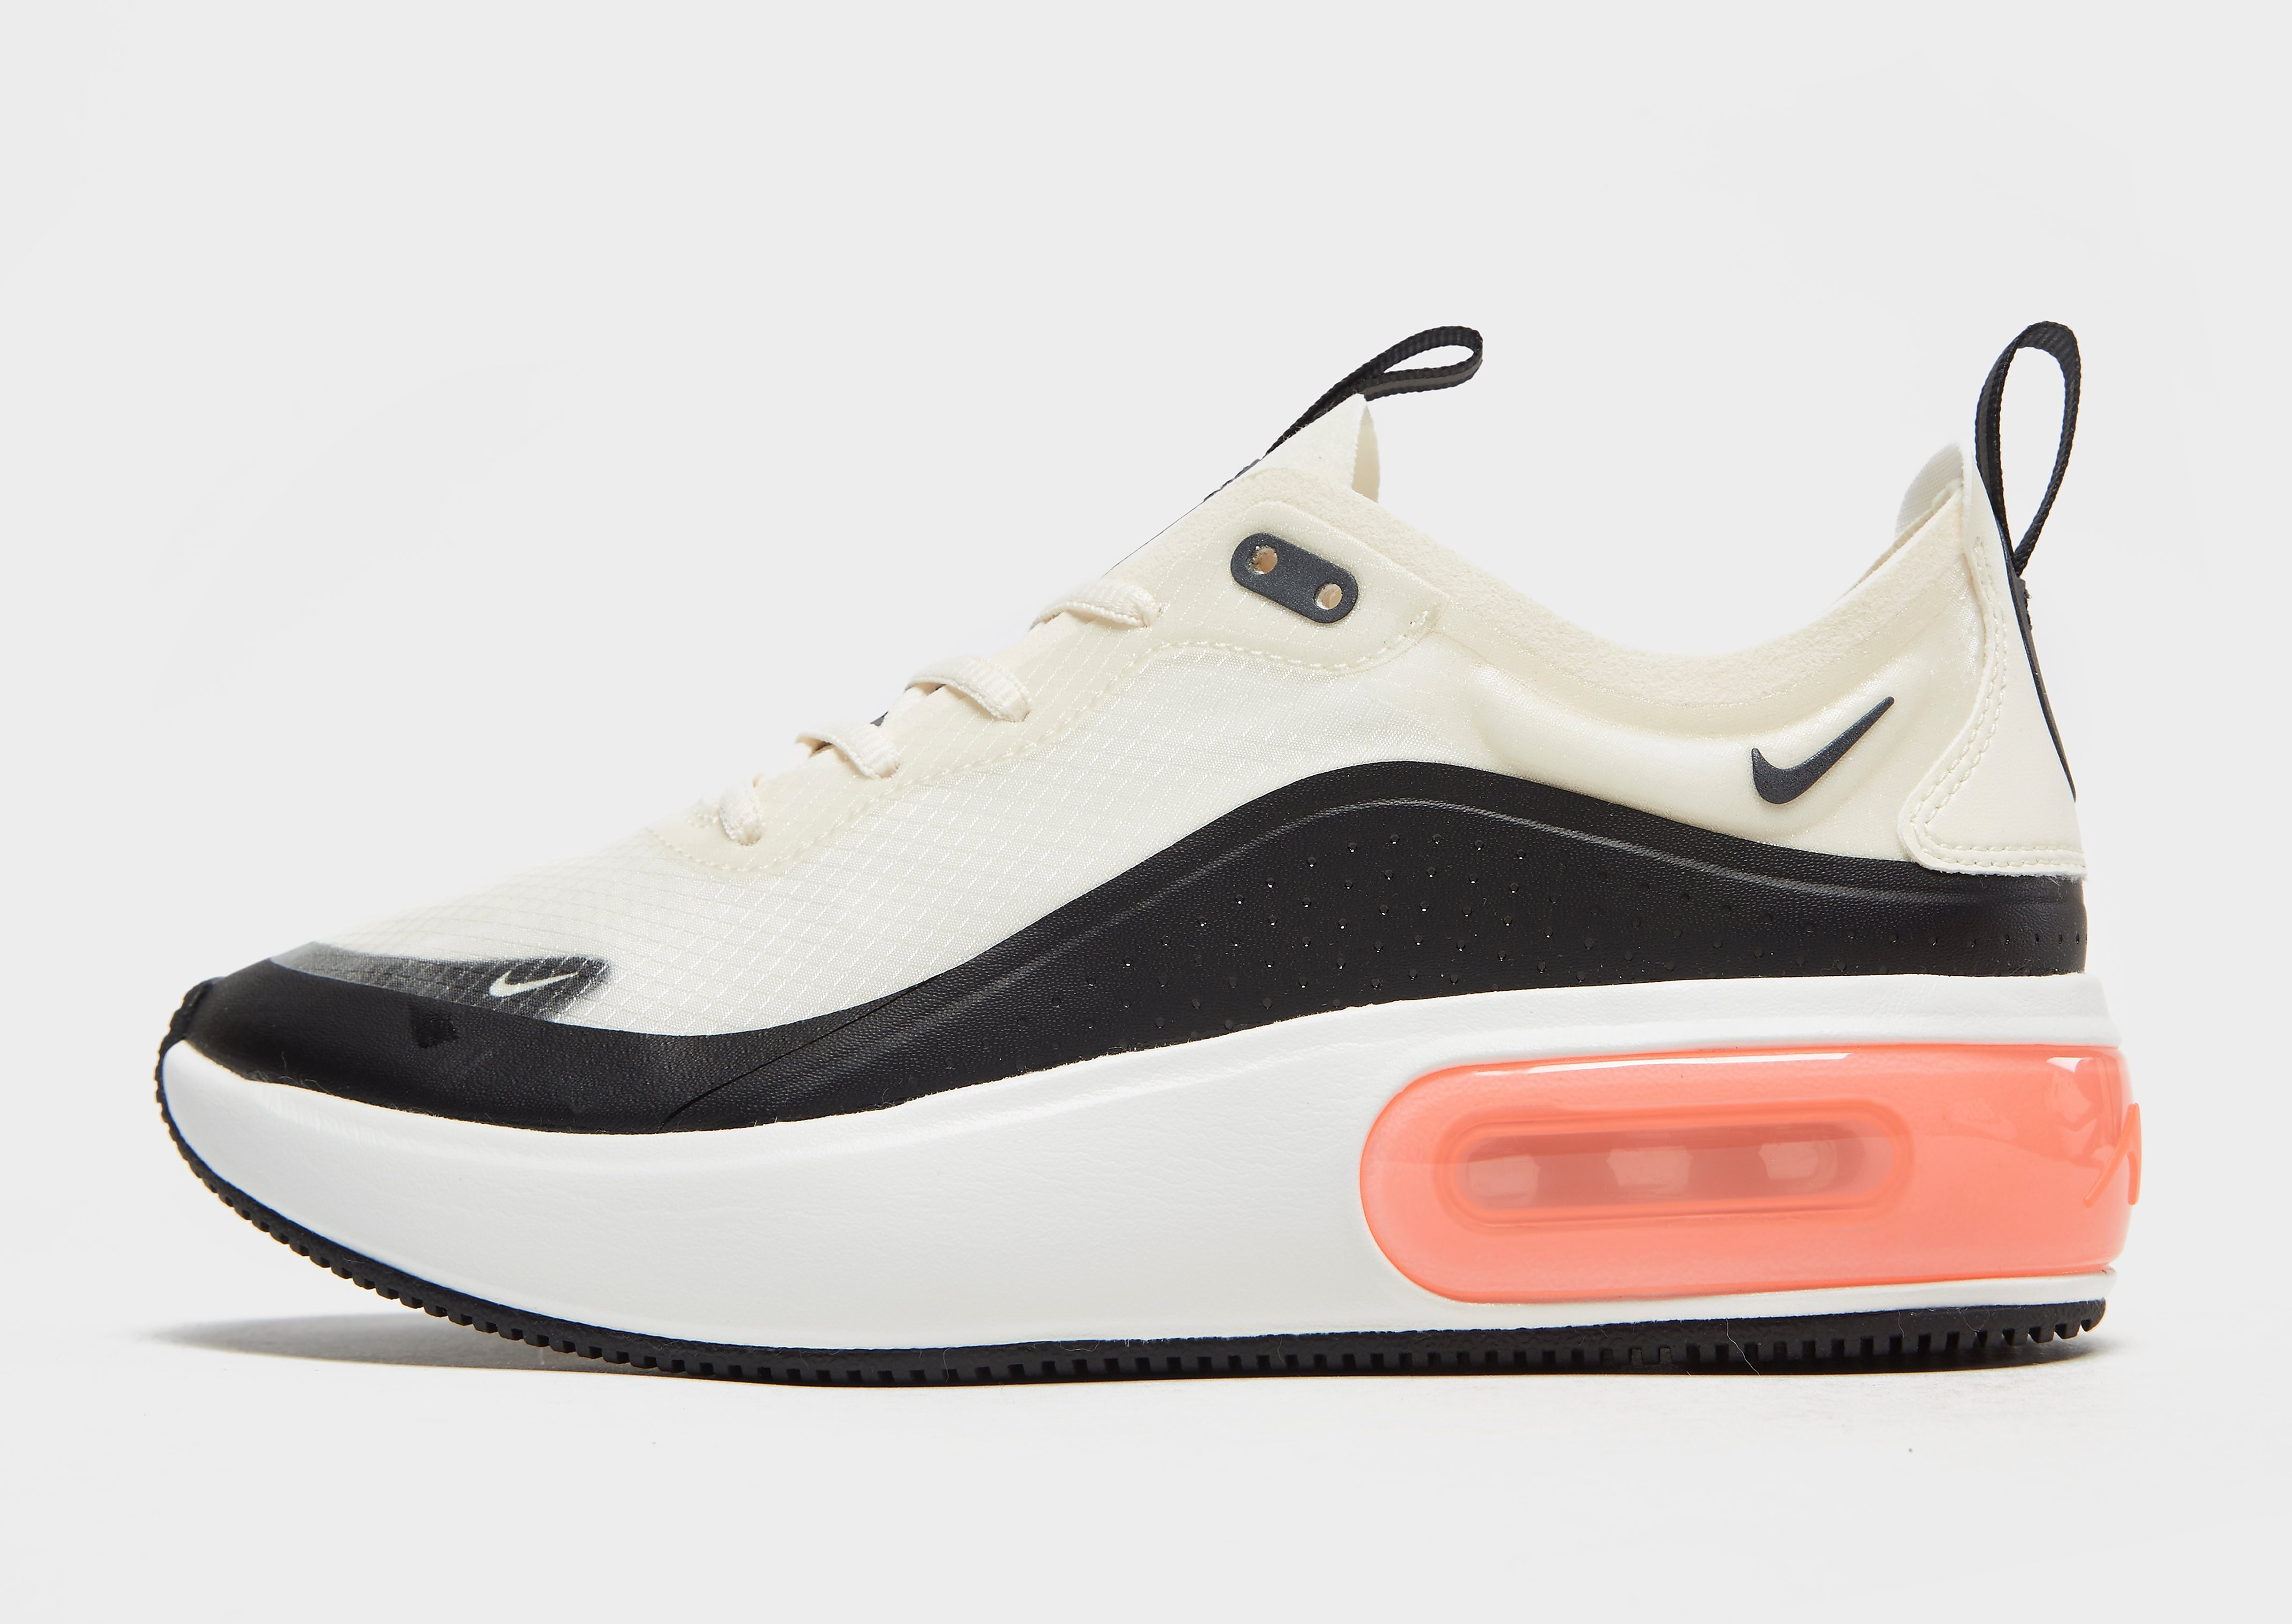 new collection limited guantity sports shoes Nike Air Max Dia SE Damen - Off-White/Black - Womens, Off ...